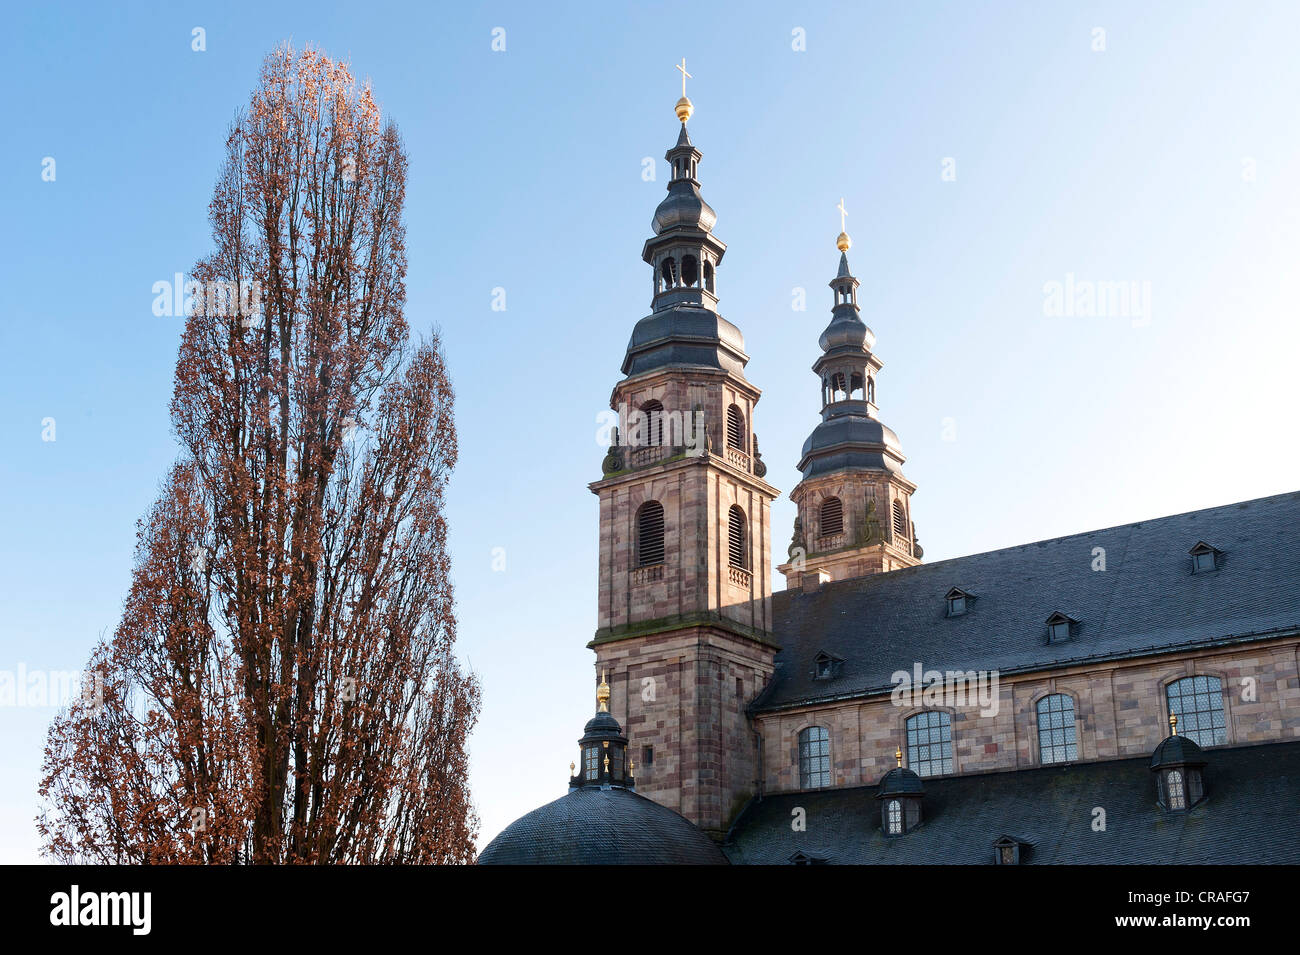 Cathedral towers built by Johann Dientzenhofer, 1704 - 1712, Fulda, Hesse, Germany, Europe - Stock Image